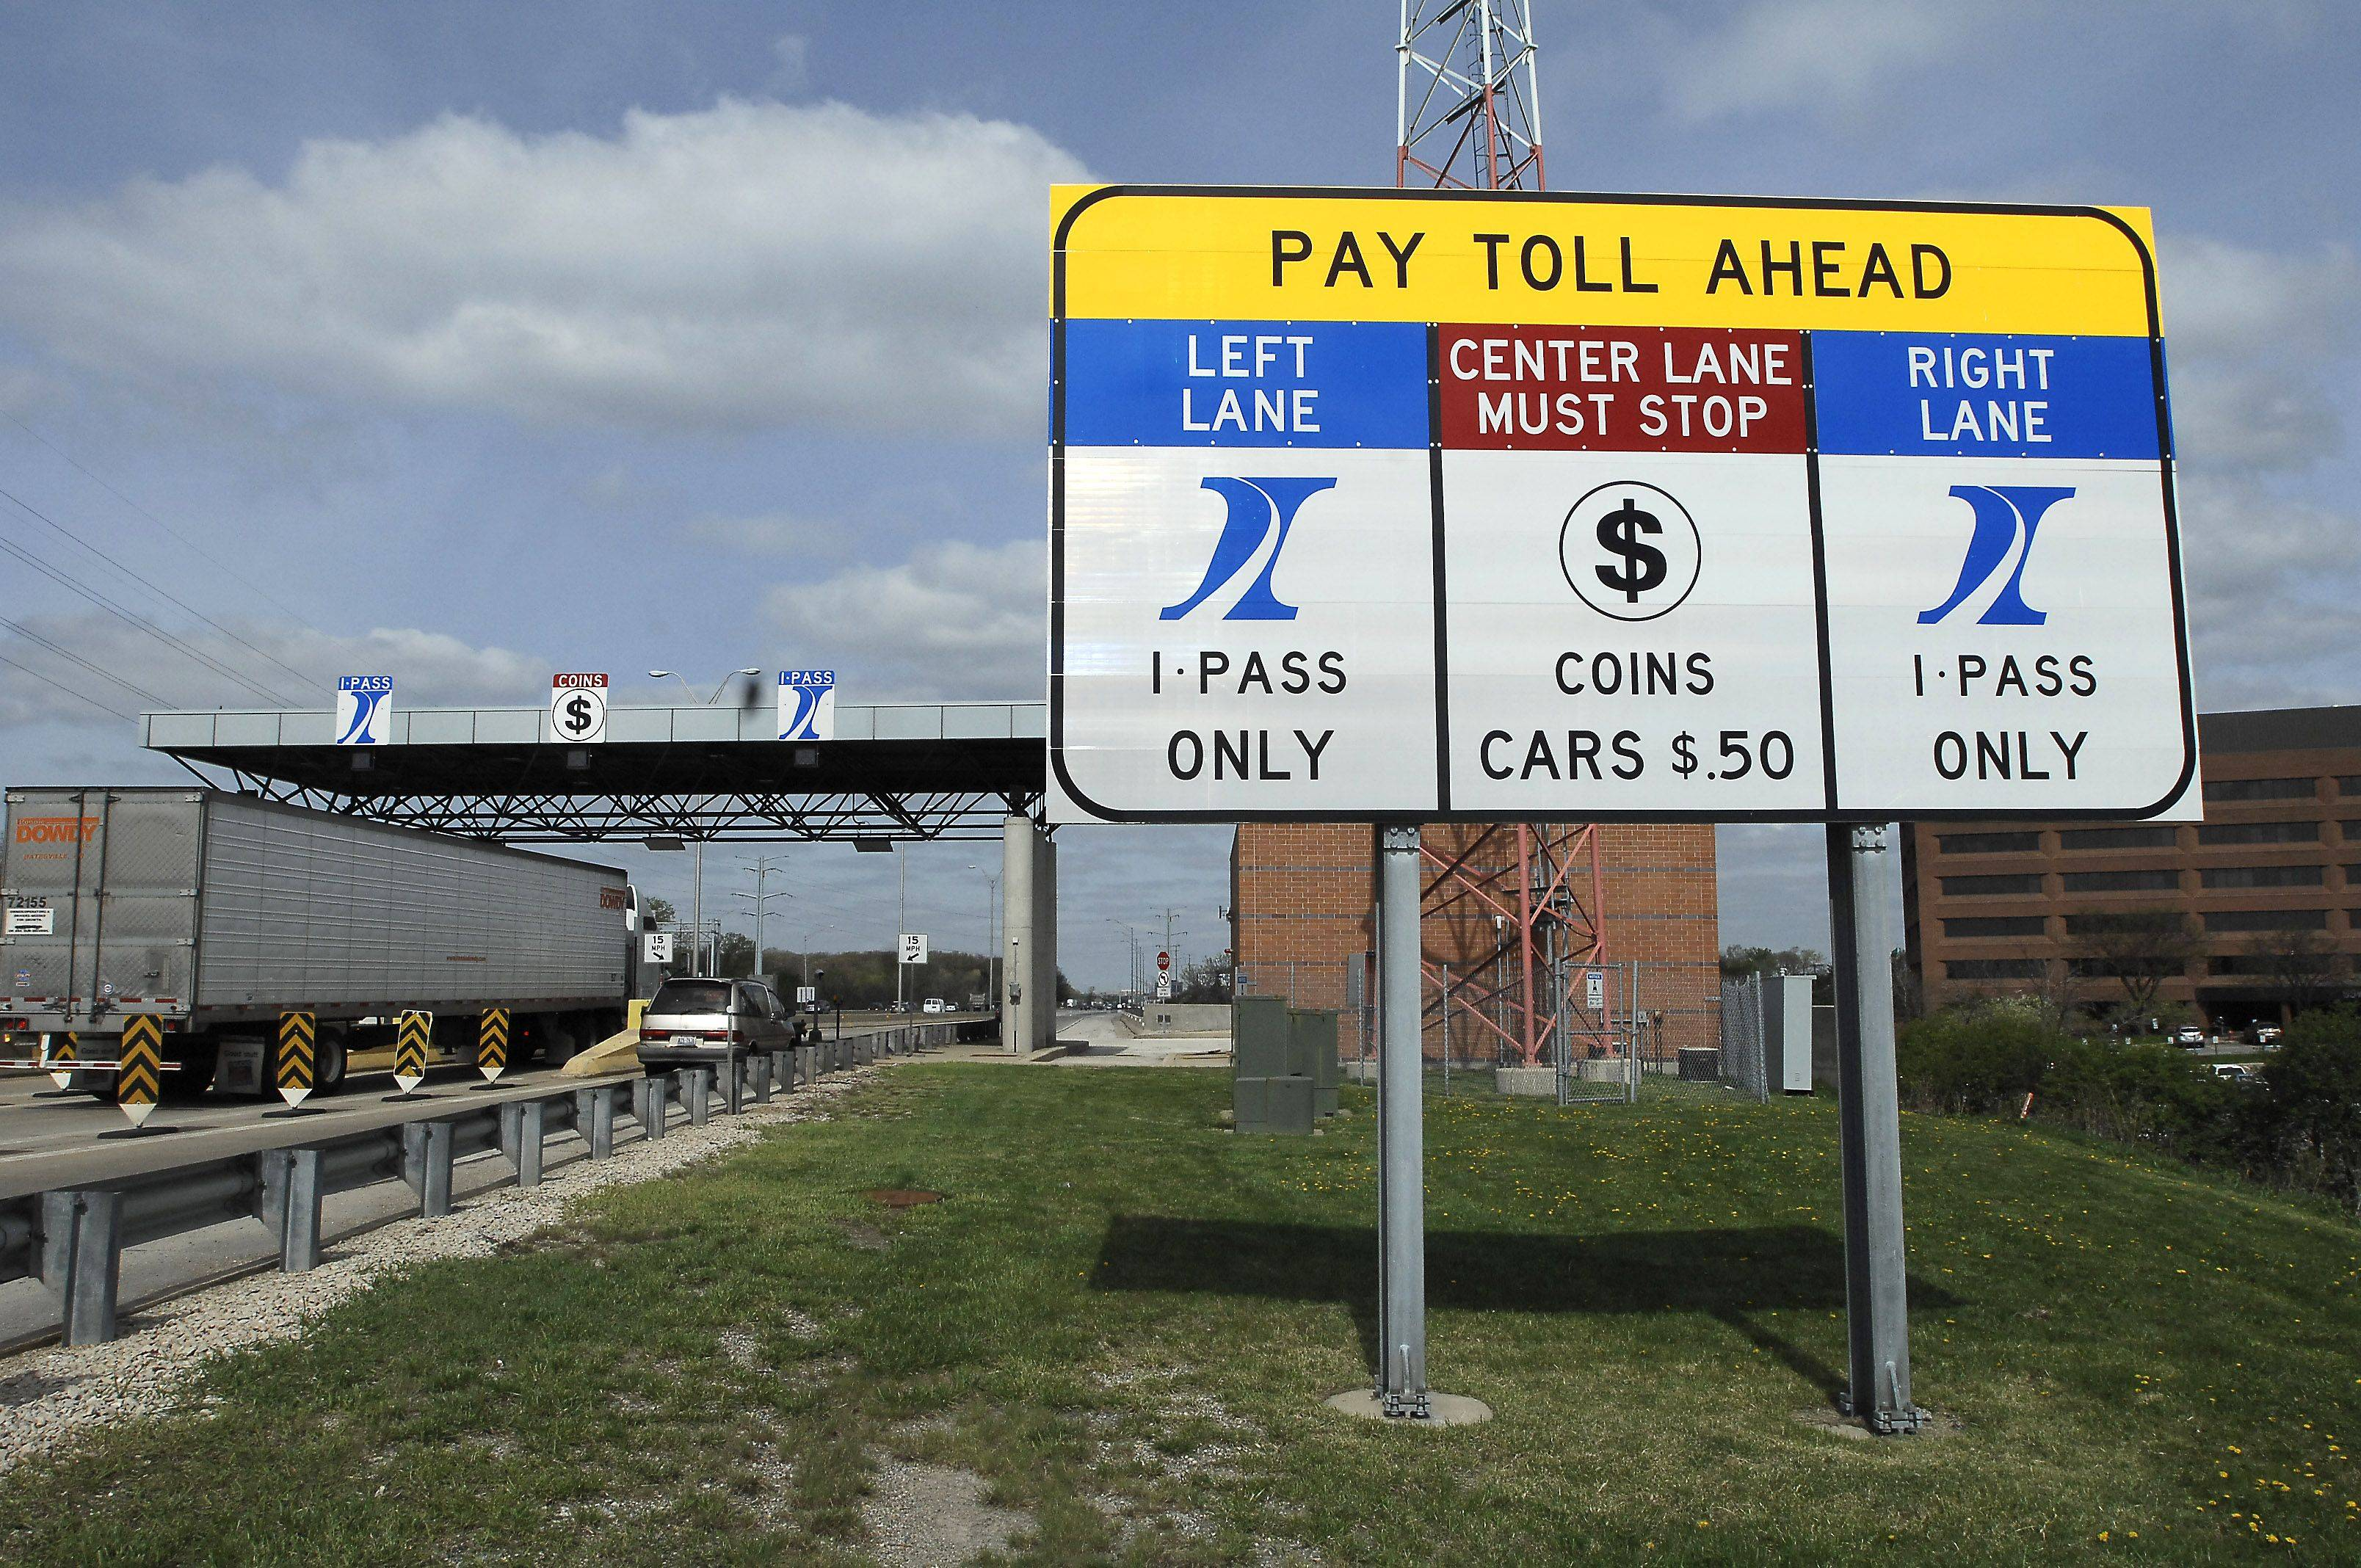 It looks like an increase in tolls is coming, but will it be generally 35 to 45 cents, or 15 cents for current 40-cent tolls? The smaller plan could at least get some debate today.